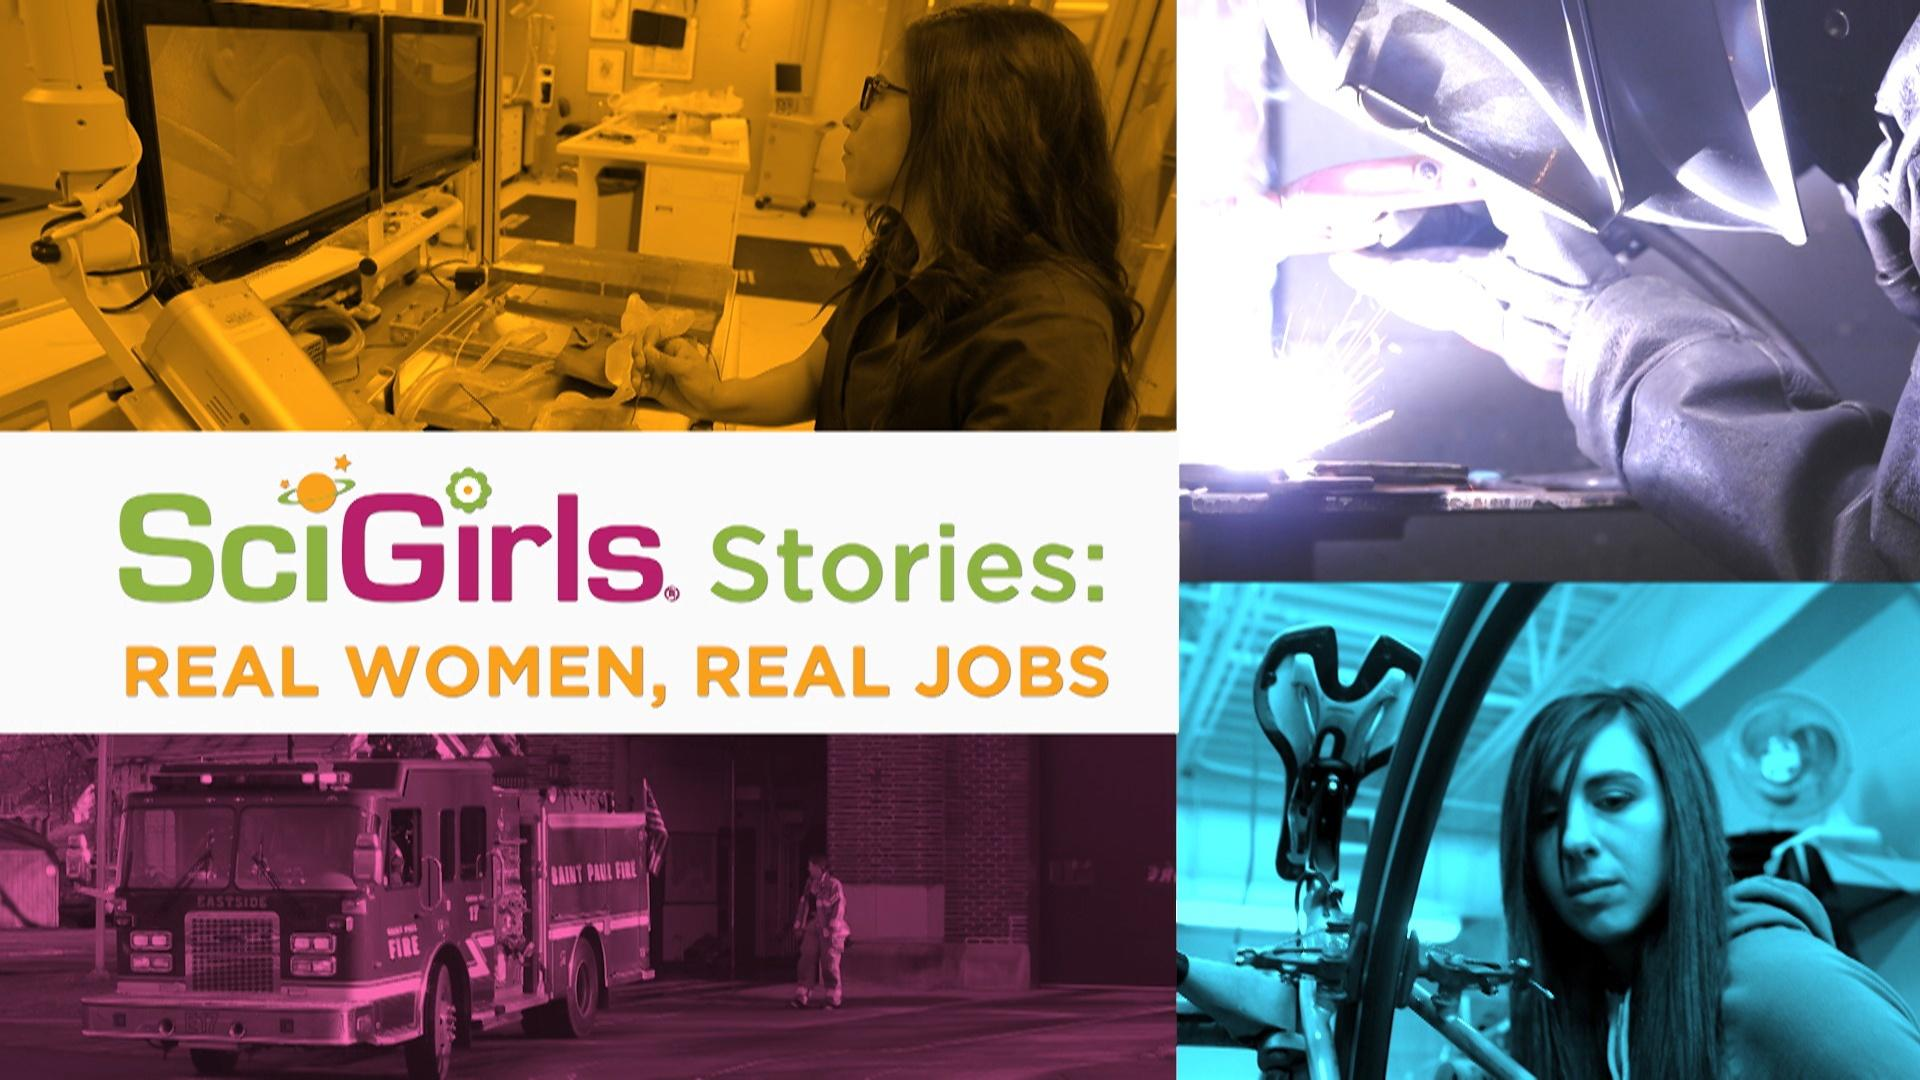 SciGirls Stories: Real Women, Real Jobs